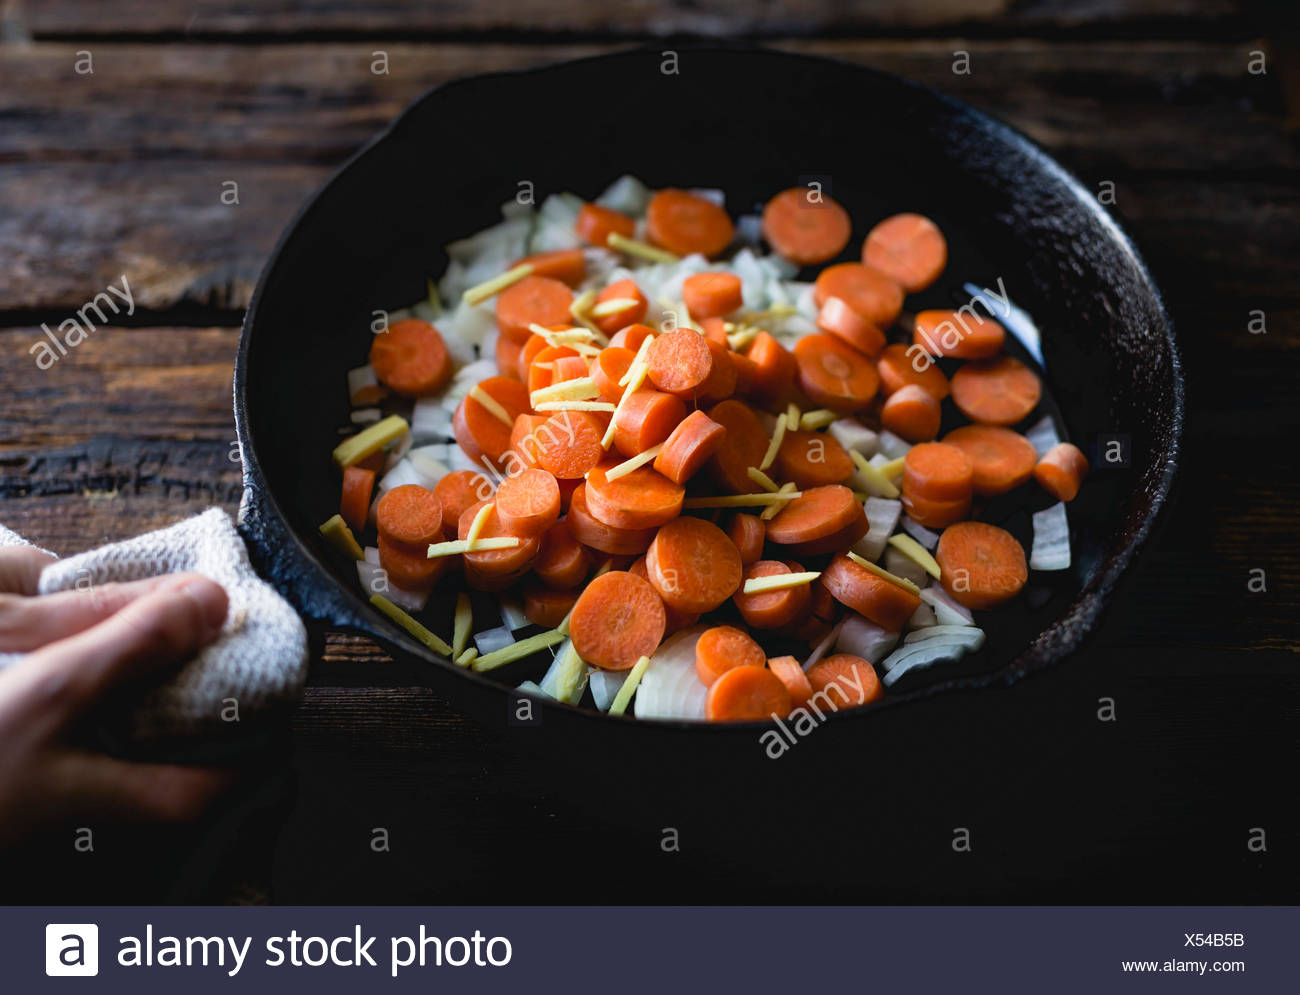 Carrots, onions and ginger in a saucepan - Stock Image